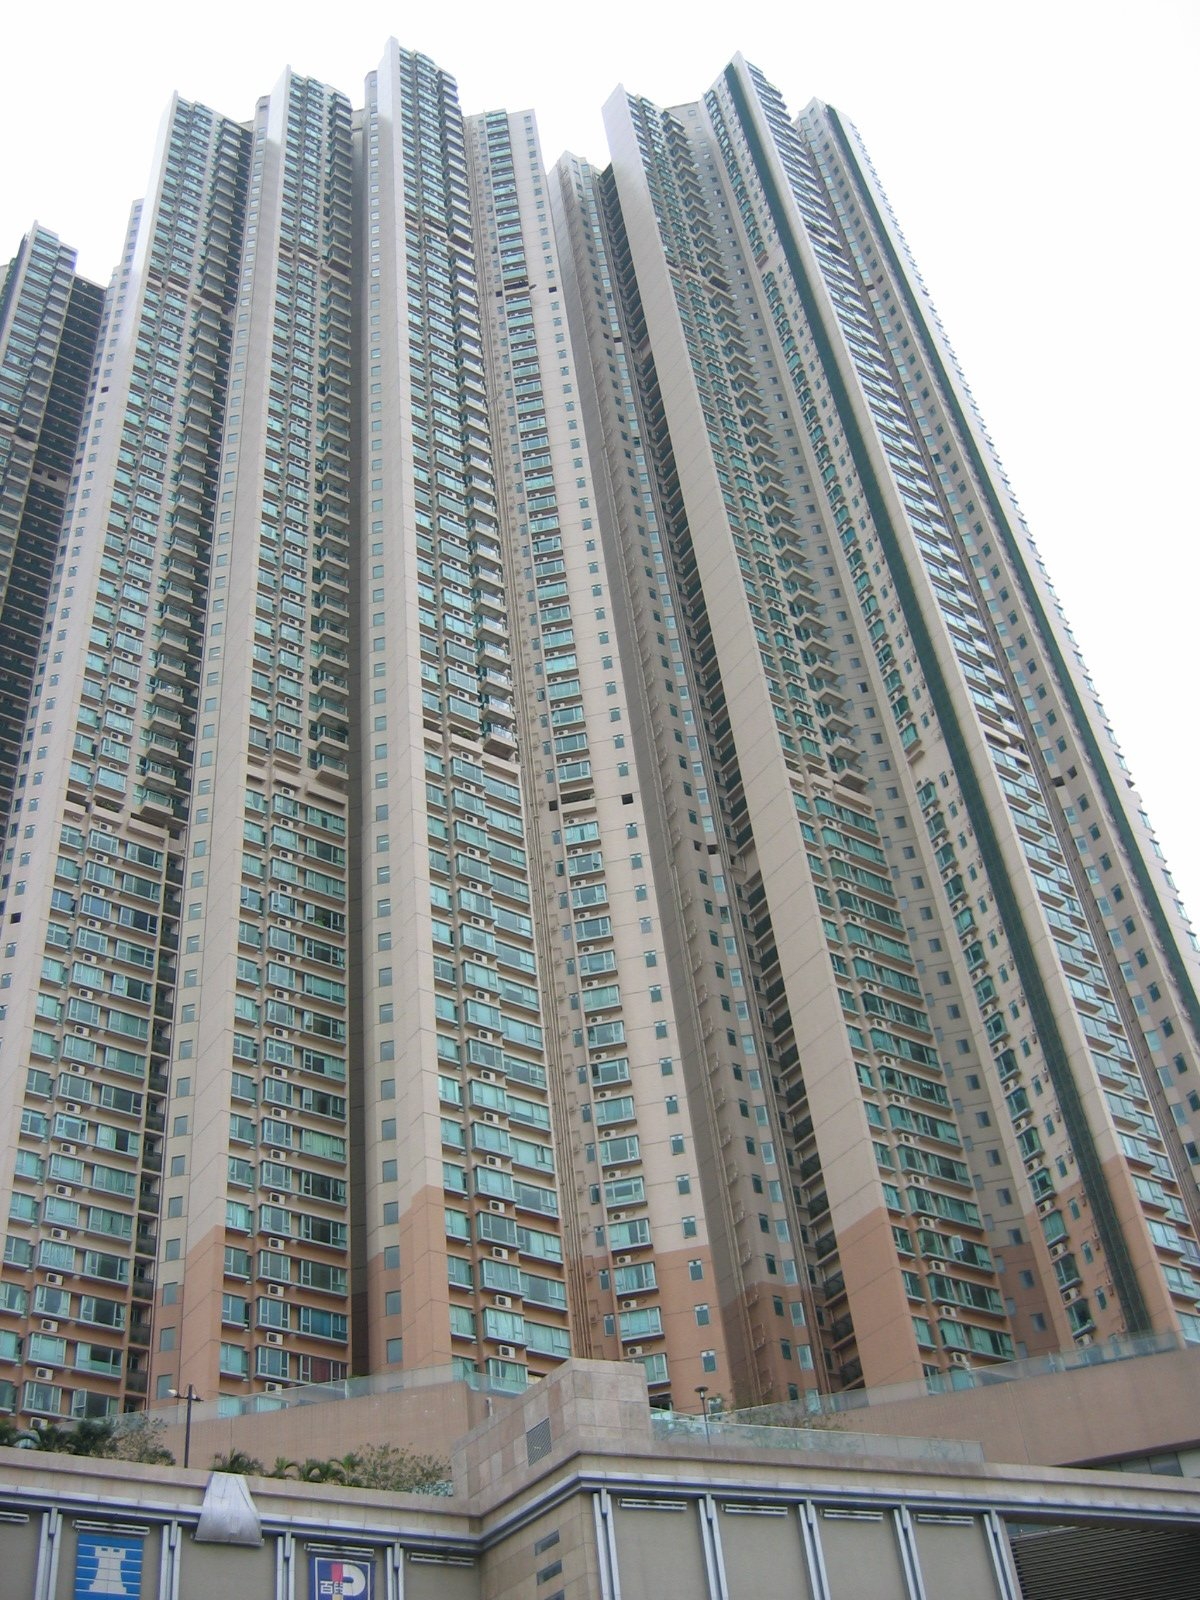 Apartment Building Ownership tower block - wikipedia